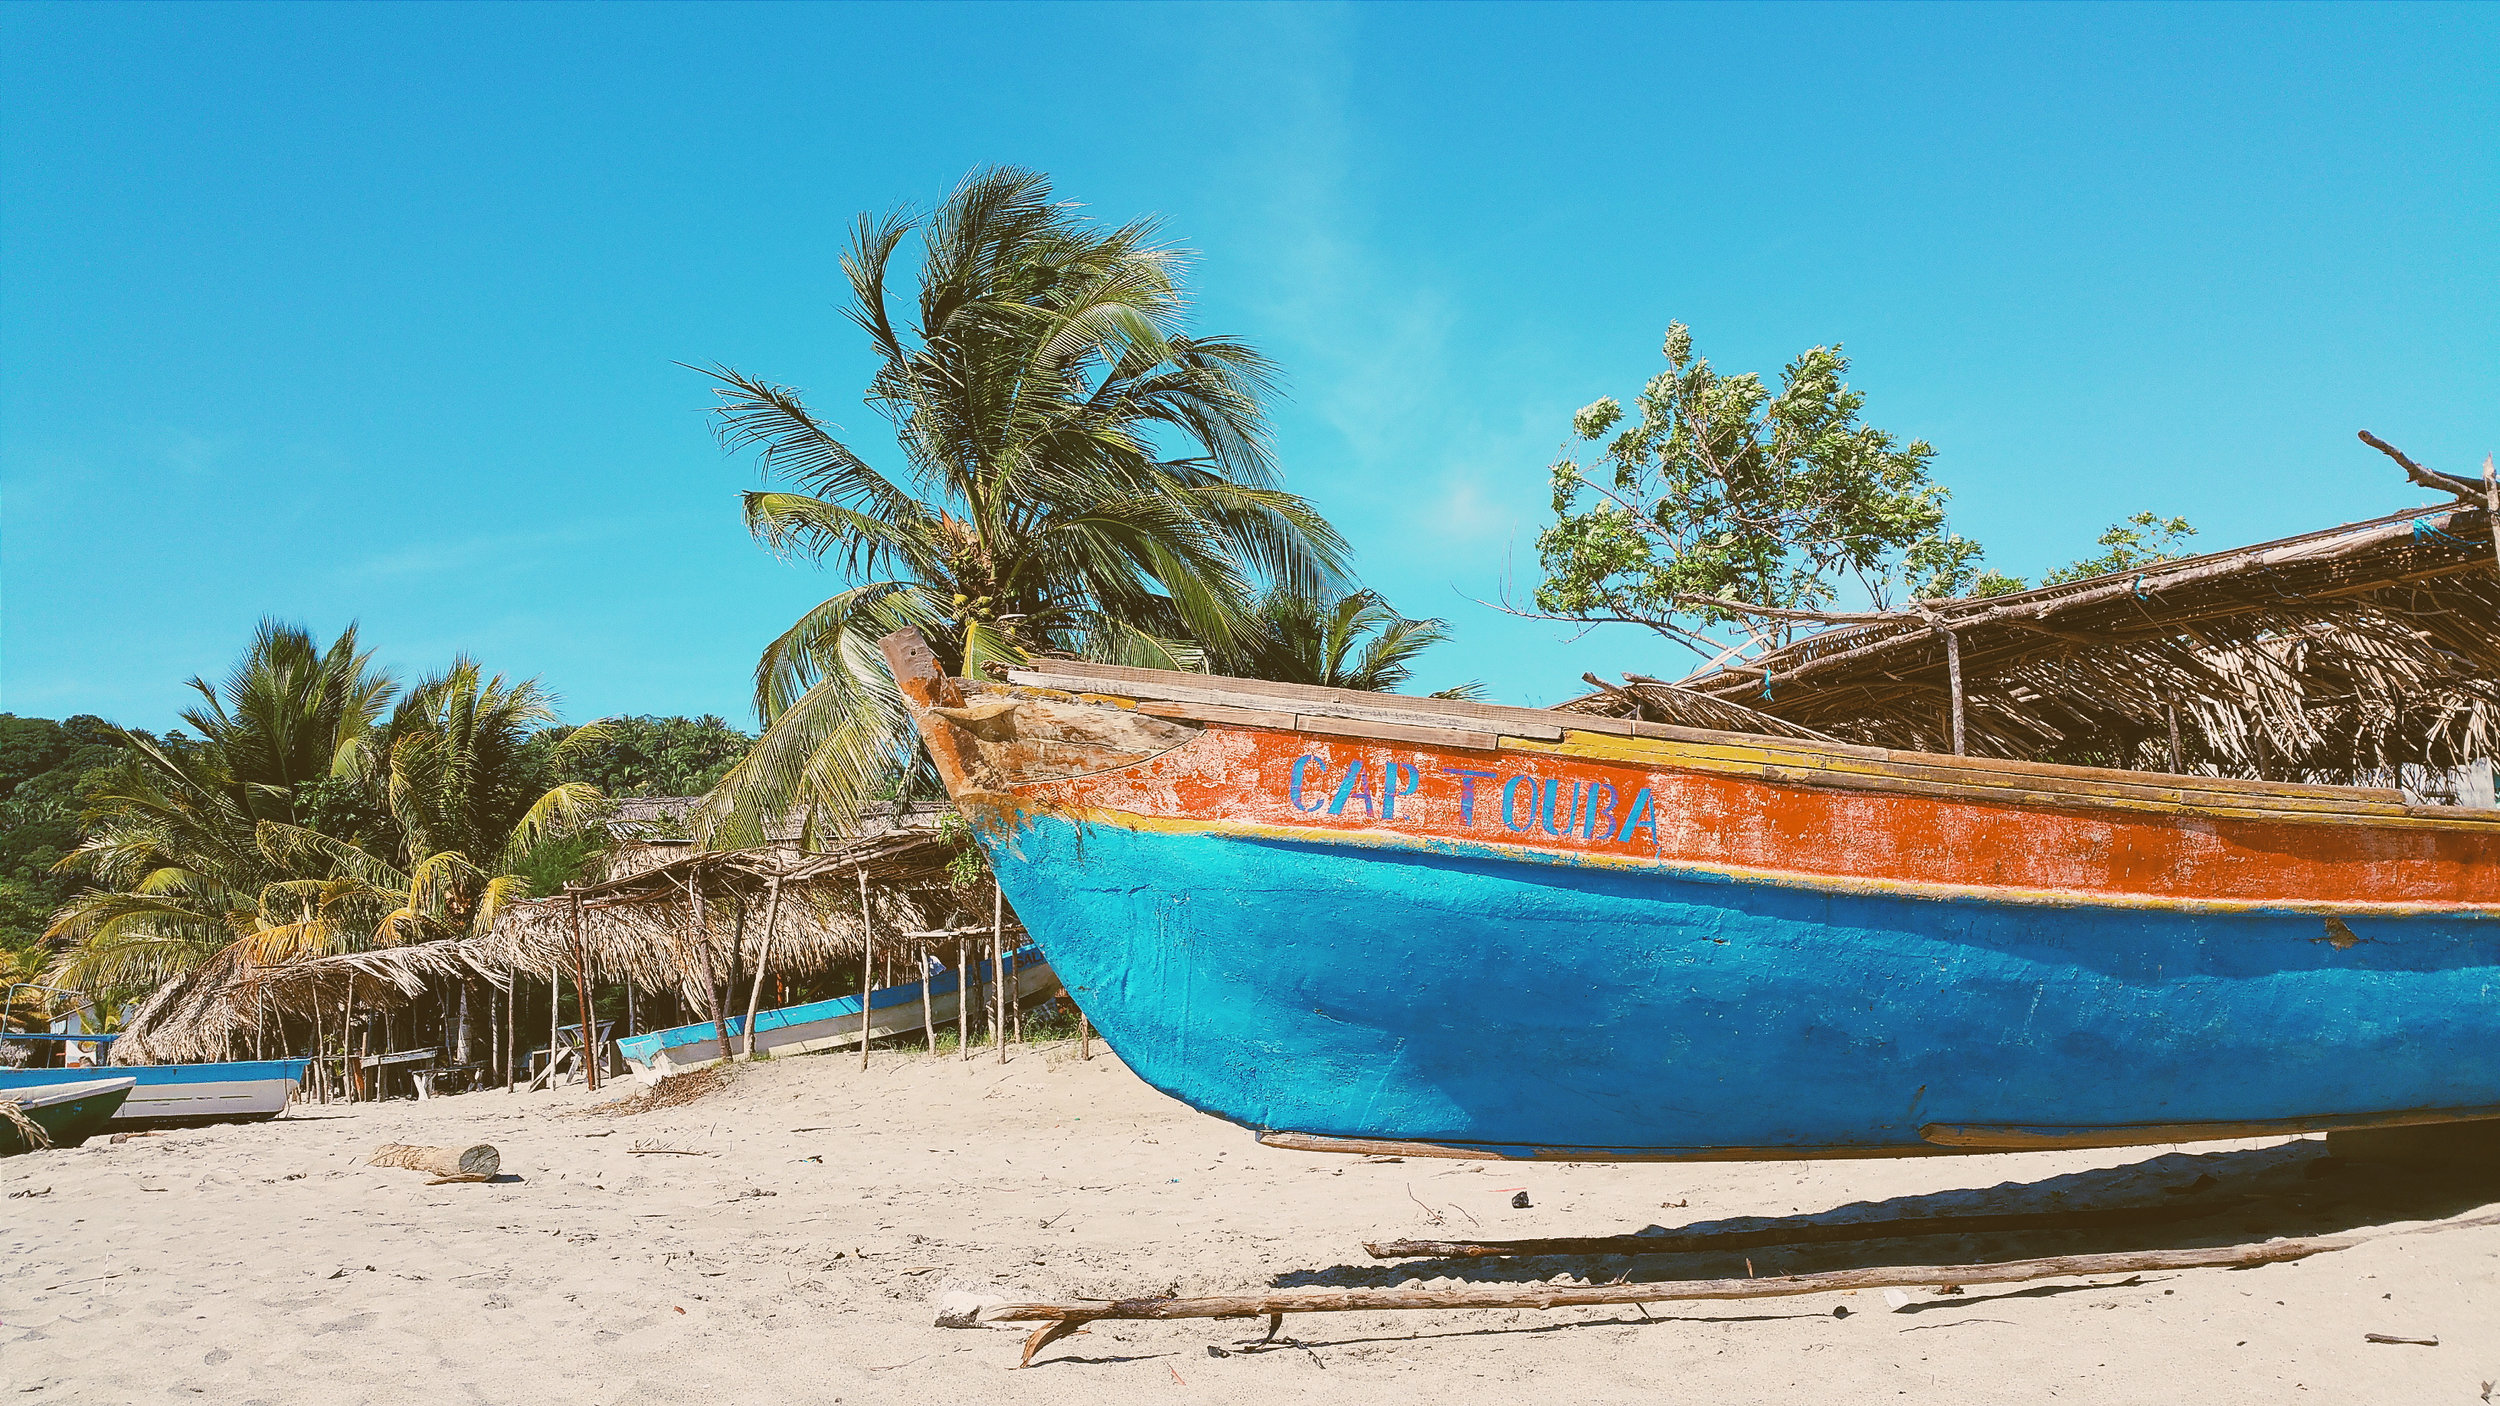 Photograph from Honduras by  Miguel Gomez . Honduras has a Pacific coastline to the south.